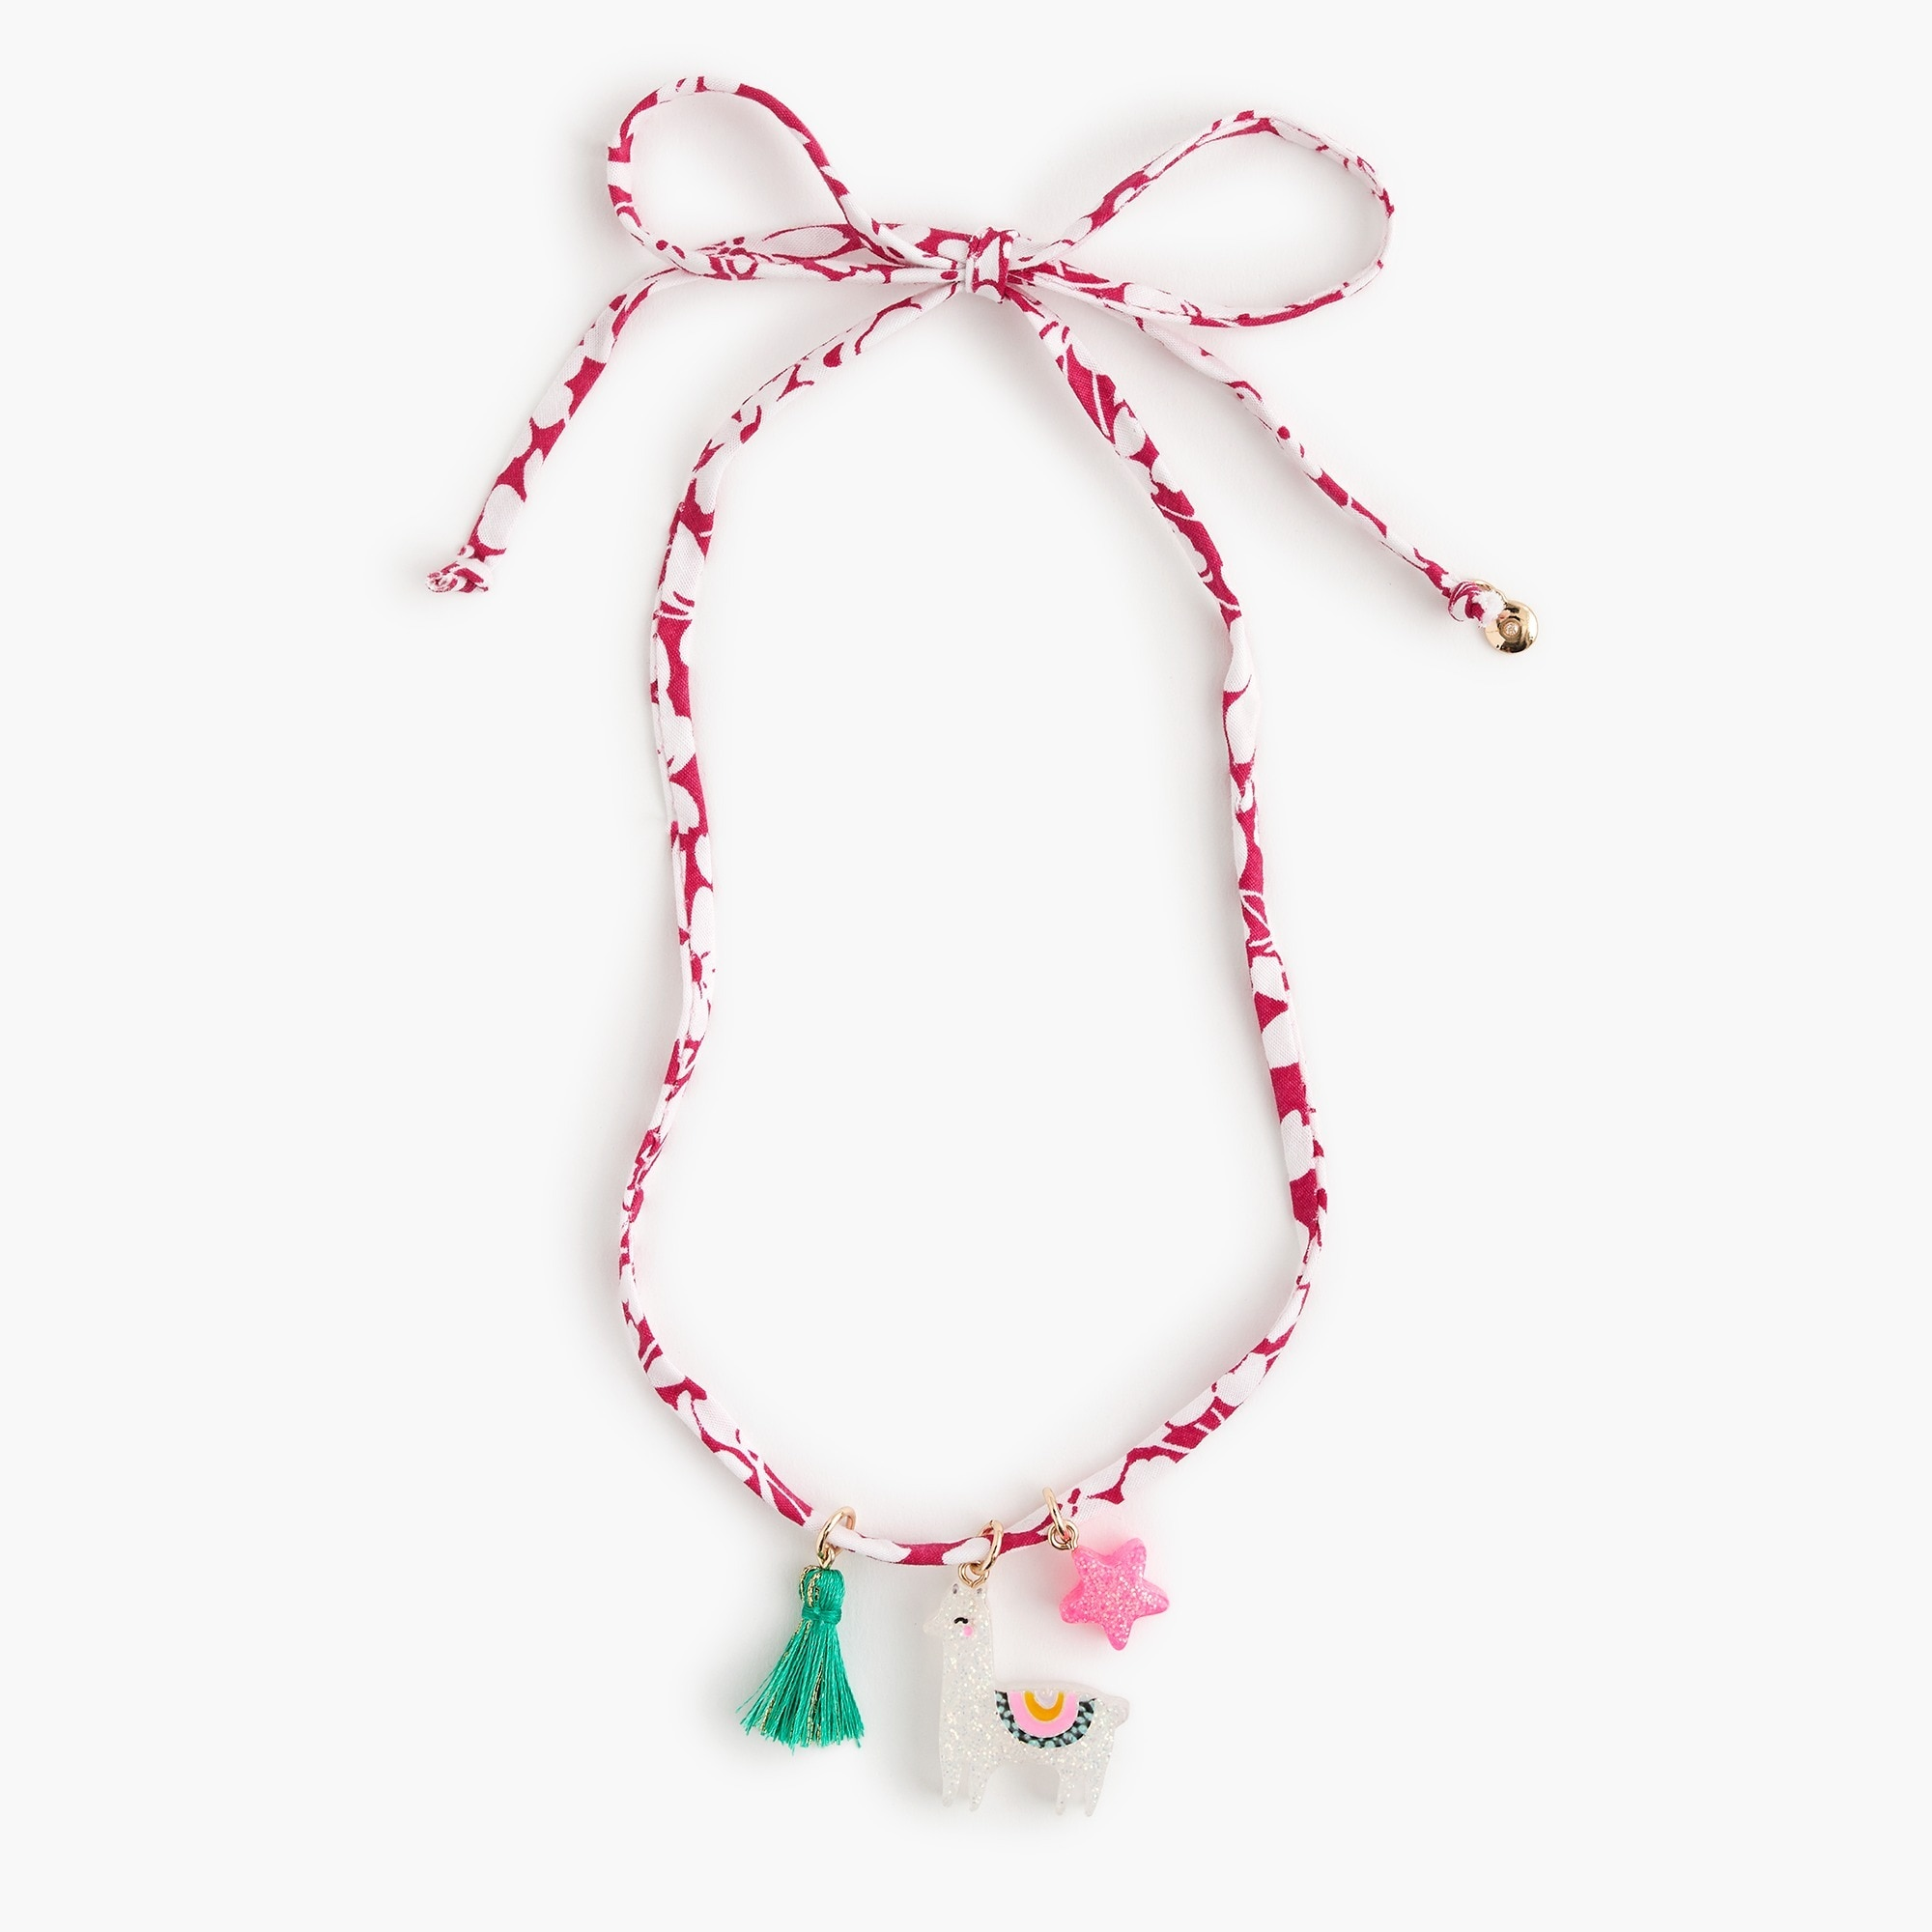 girls Girls' fabric necklace with llama charm and tassel